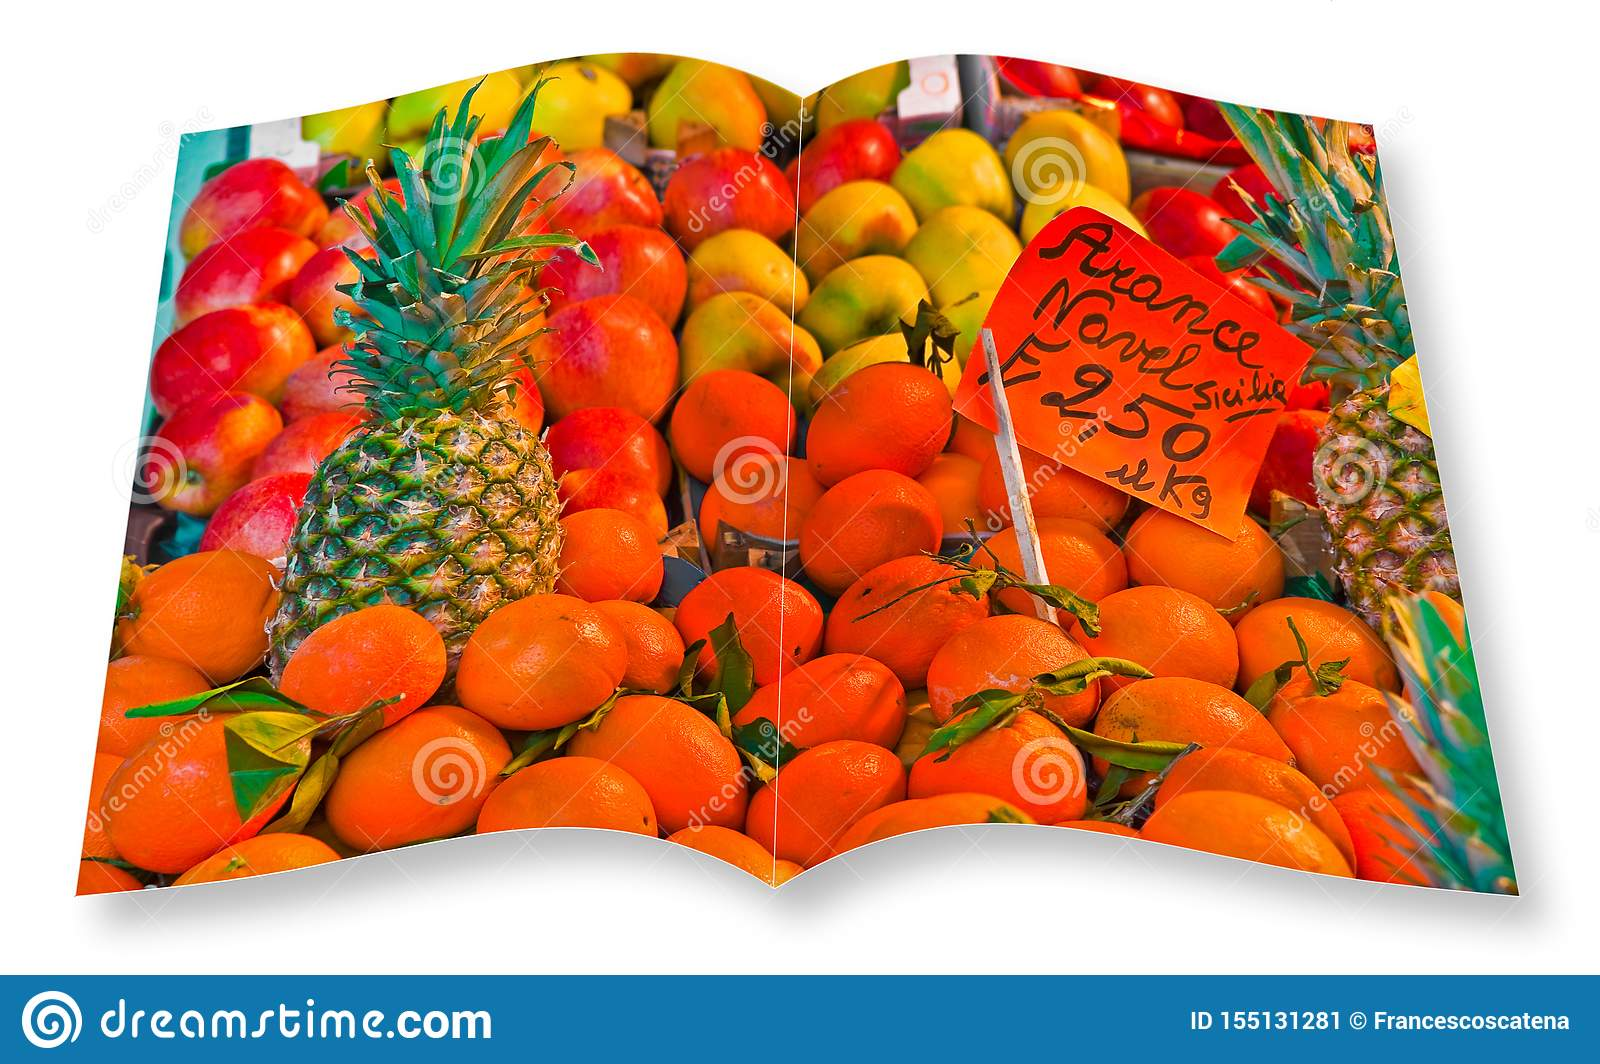 Colorful fruits and vegetables from organic agriculture exhibited in a italian market - 3D render of an opened photo book isolated